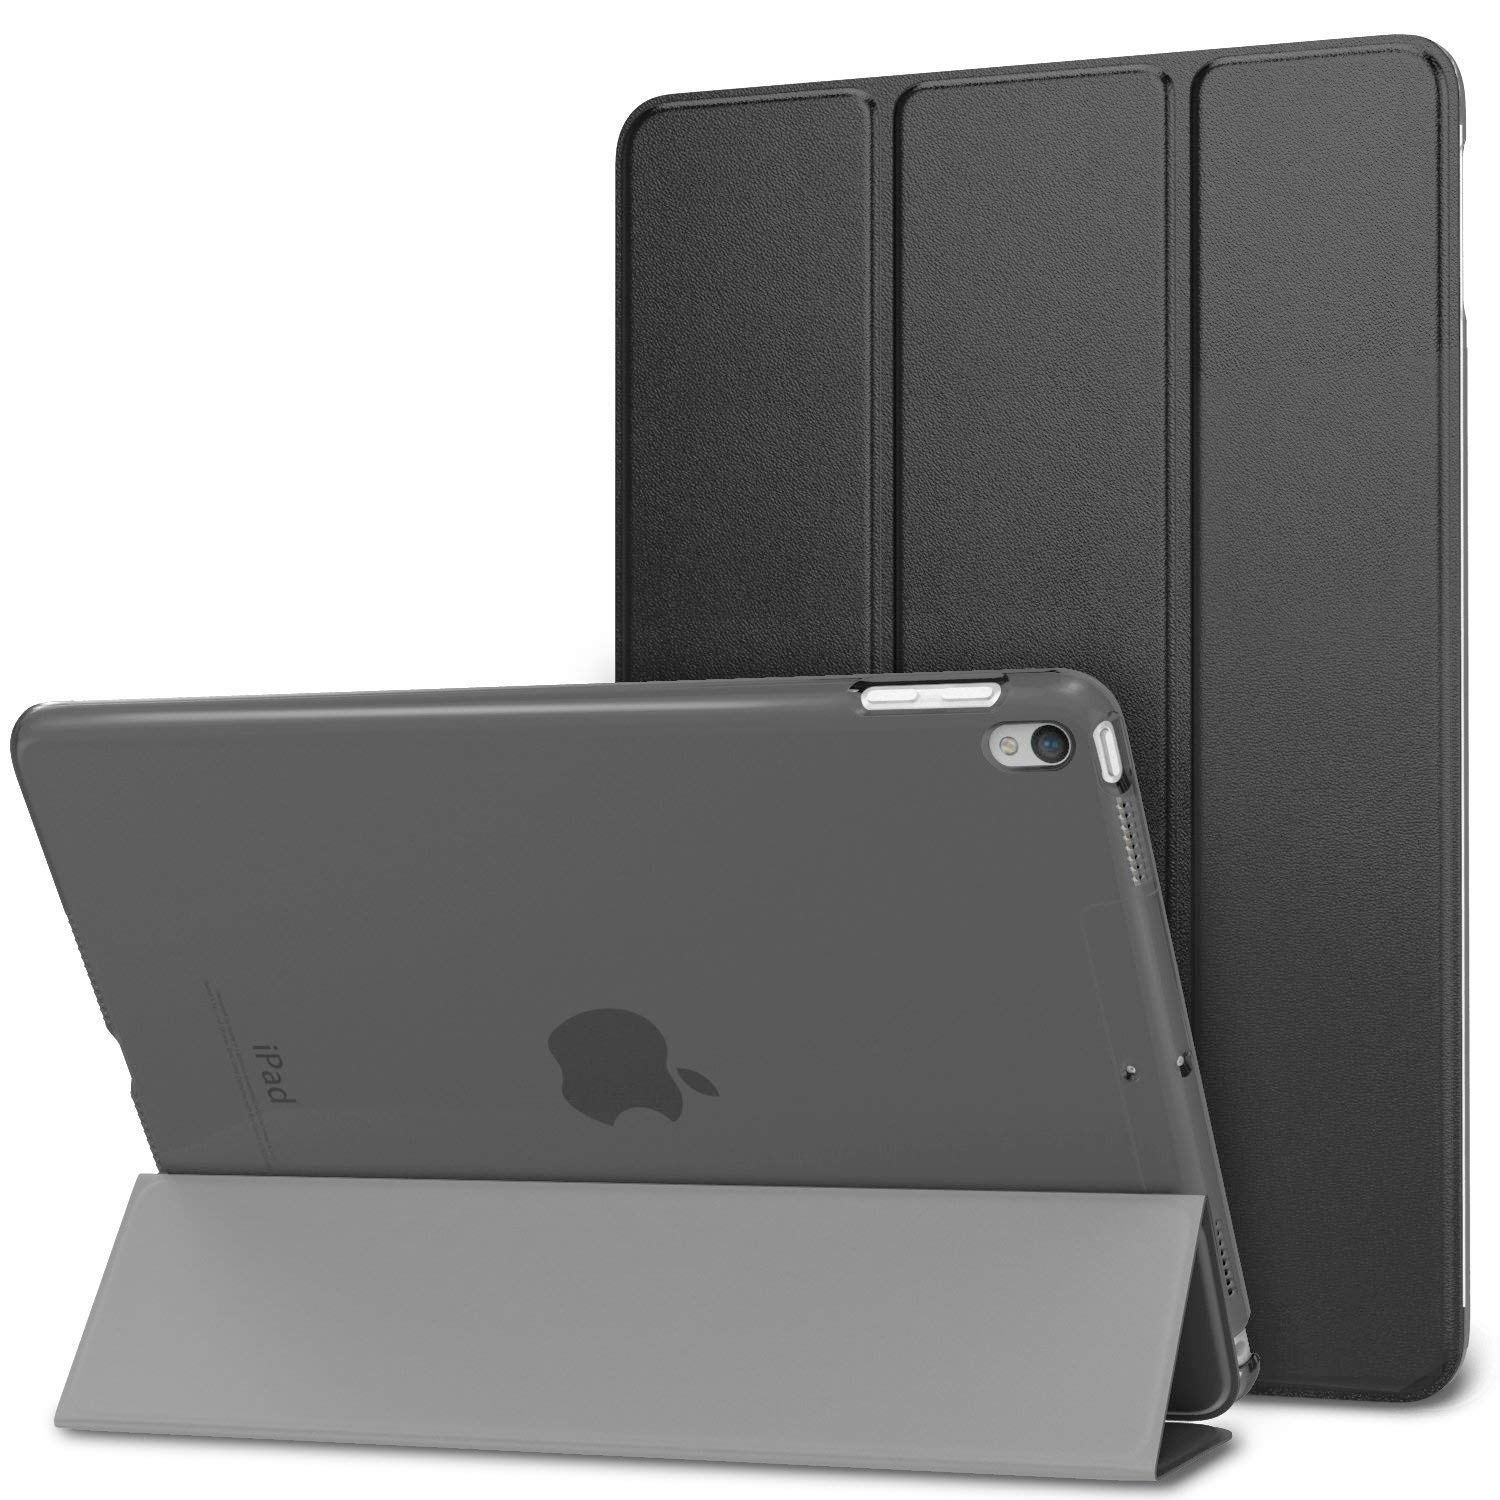 4930fa87f7b5 iPad Cases, Sleeves & Bags | Walmart Canada